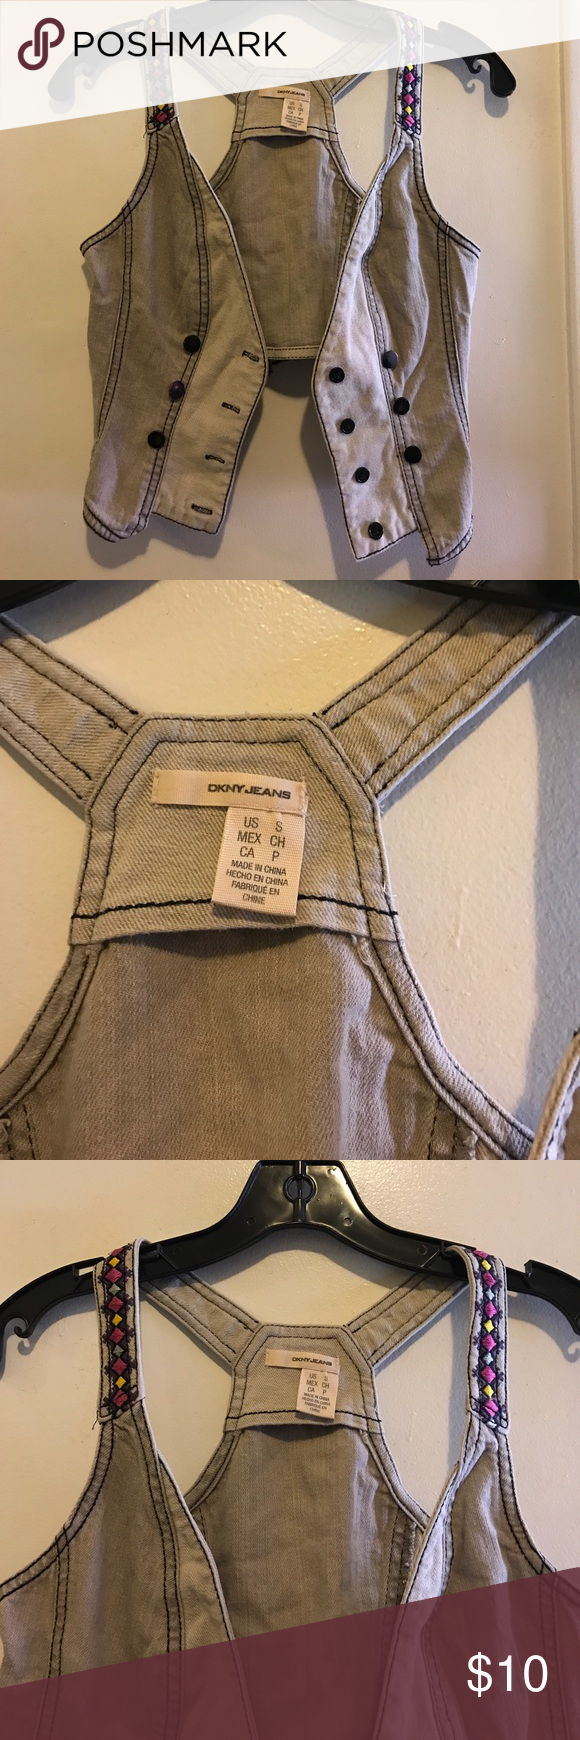 DKNY Jeans Vest I'm selling a pre-owned DKNY Jeans vest in a size small. Dkny Jackets & Coats Vests